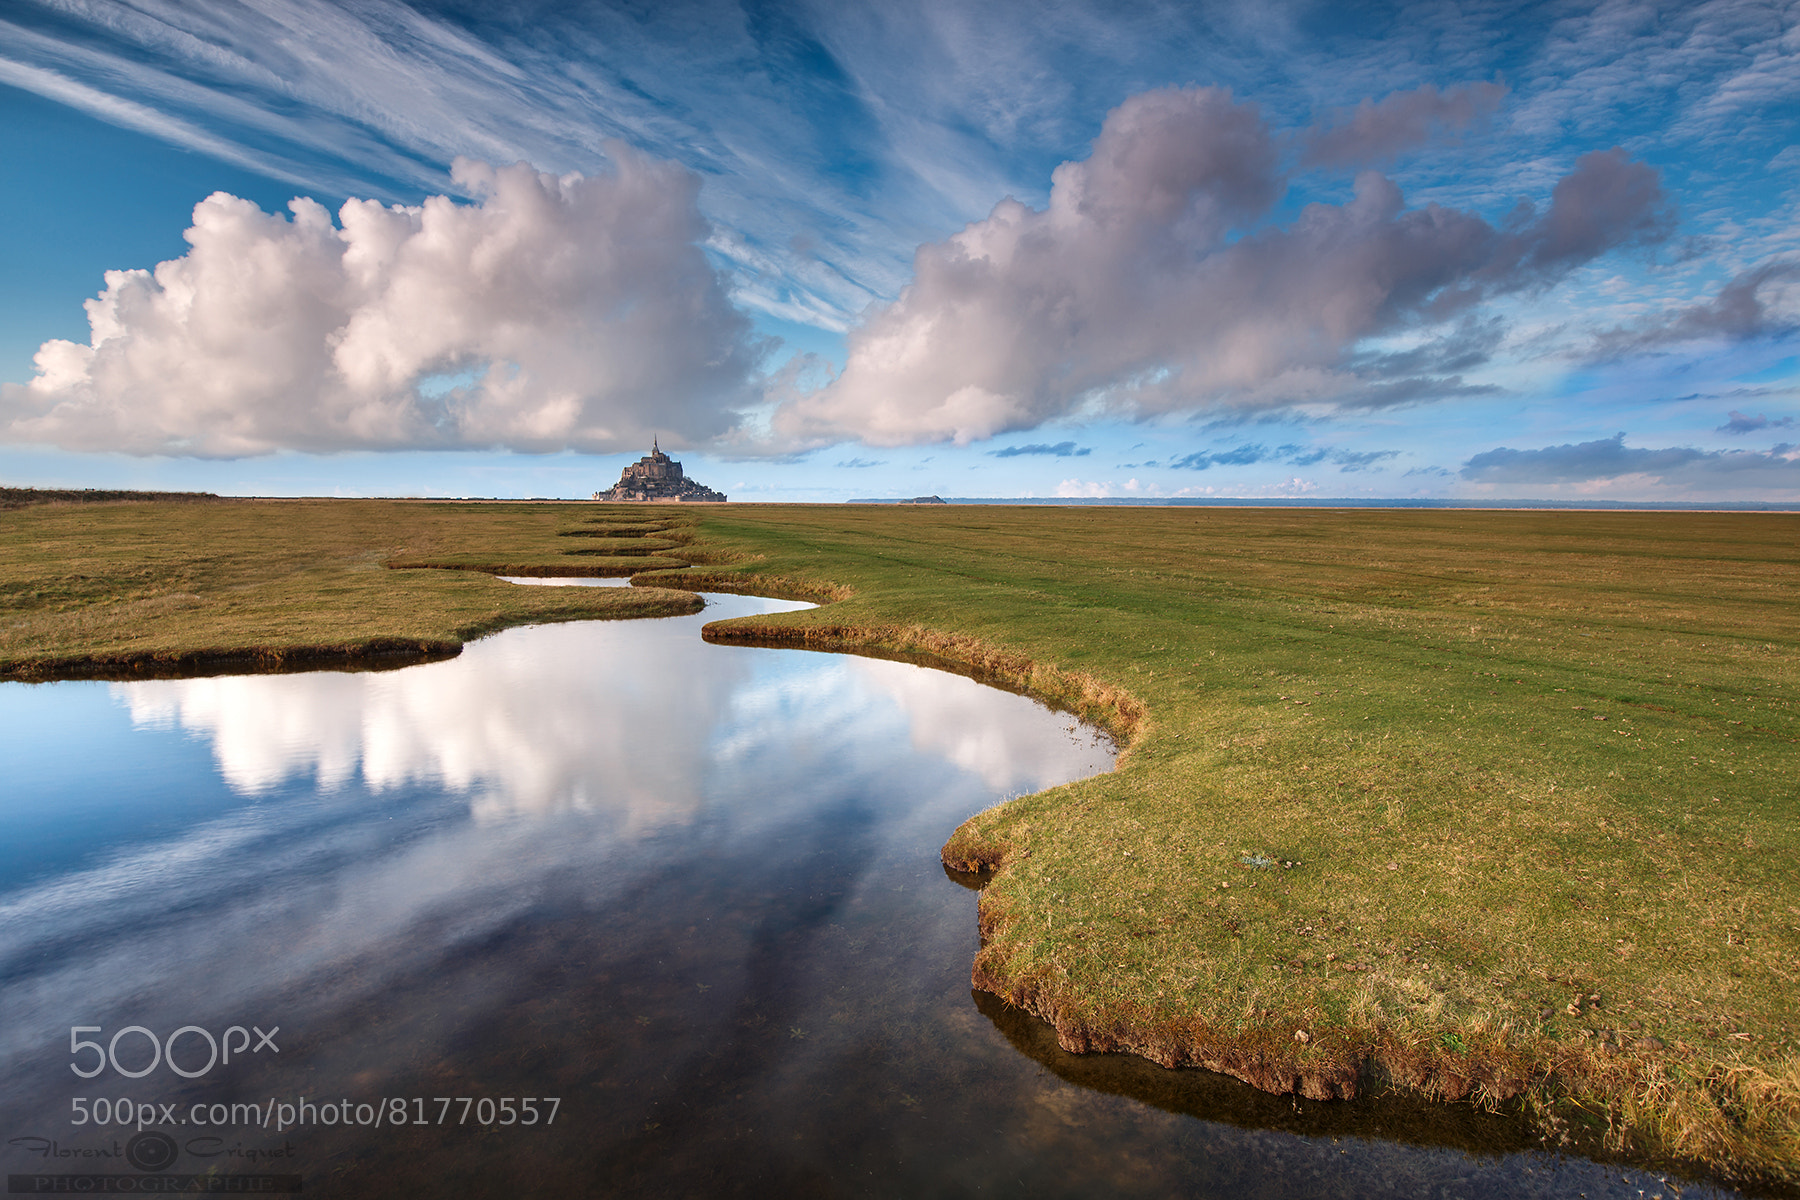 mont saint michel normandy france field leading lines landscape beautiful stunning gorgeous clouds